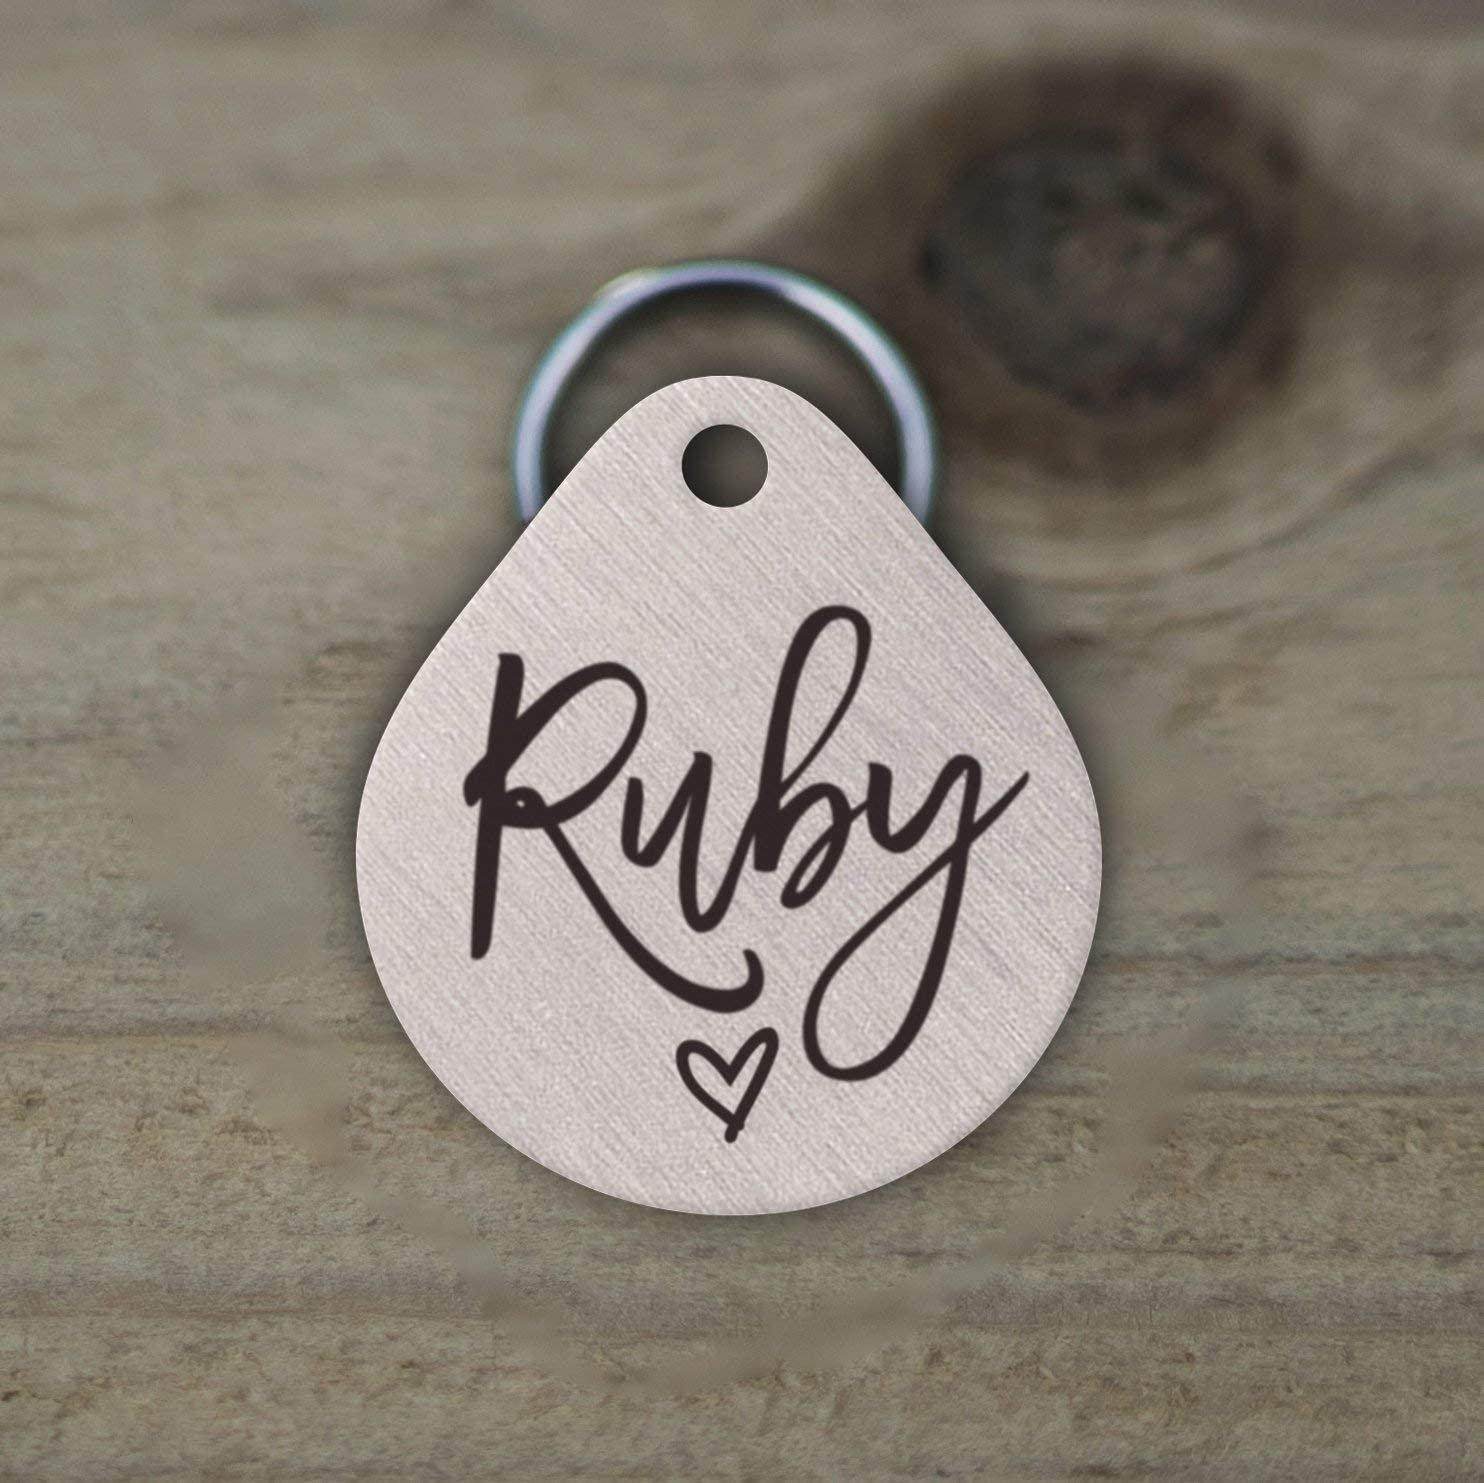 Mini Wim Stainless Steel Pet ID Tags, Personalized Dog Tag and Cat Tag, Rose Gold, and Silver, 5 Lines of Custom Text, Engraved on Both Sides, in Round, Bone, Diamond, and More